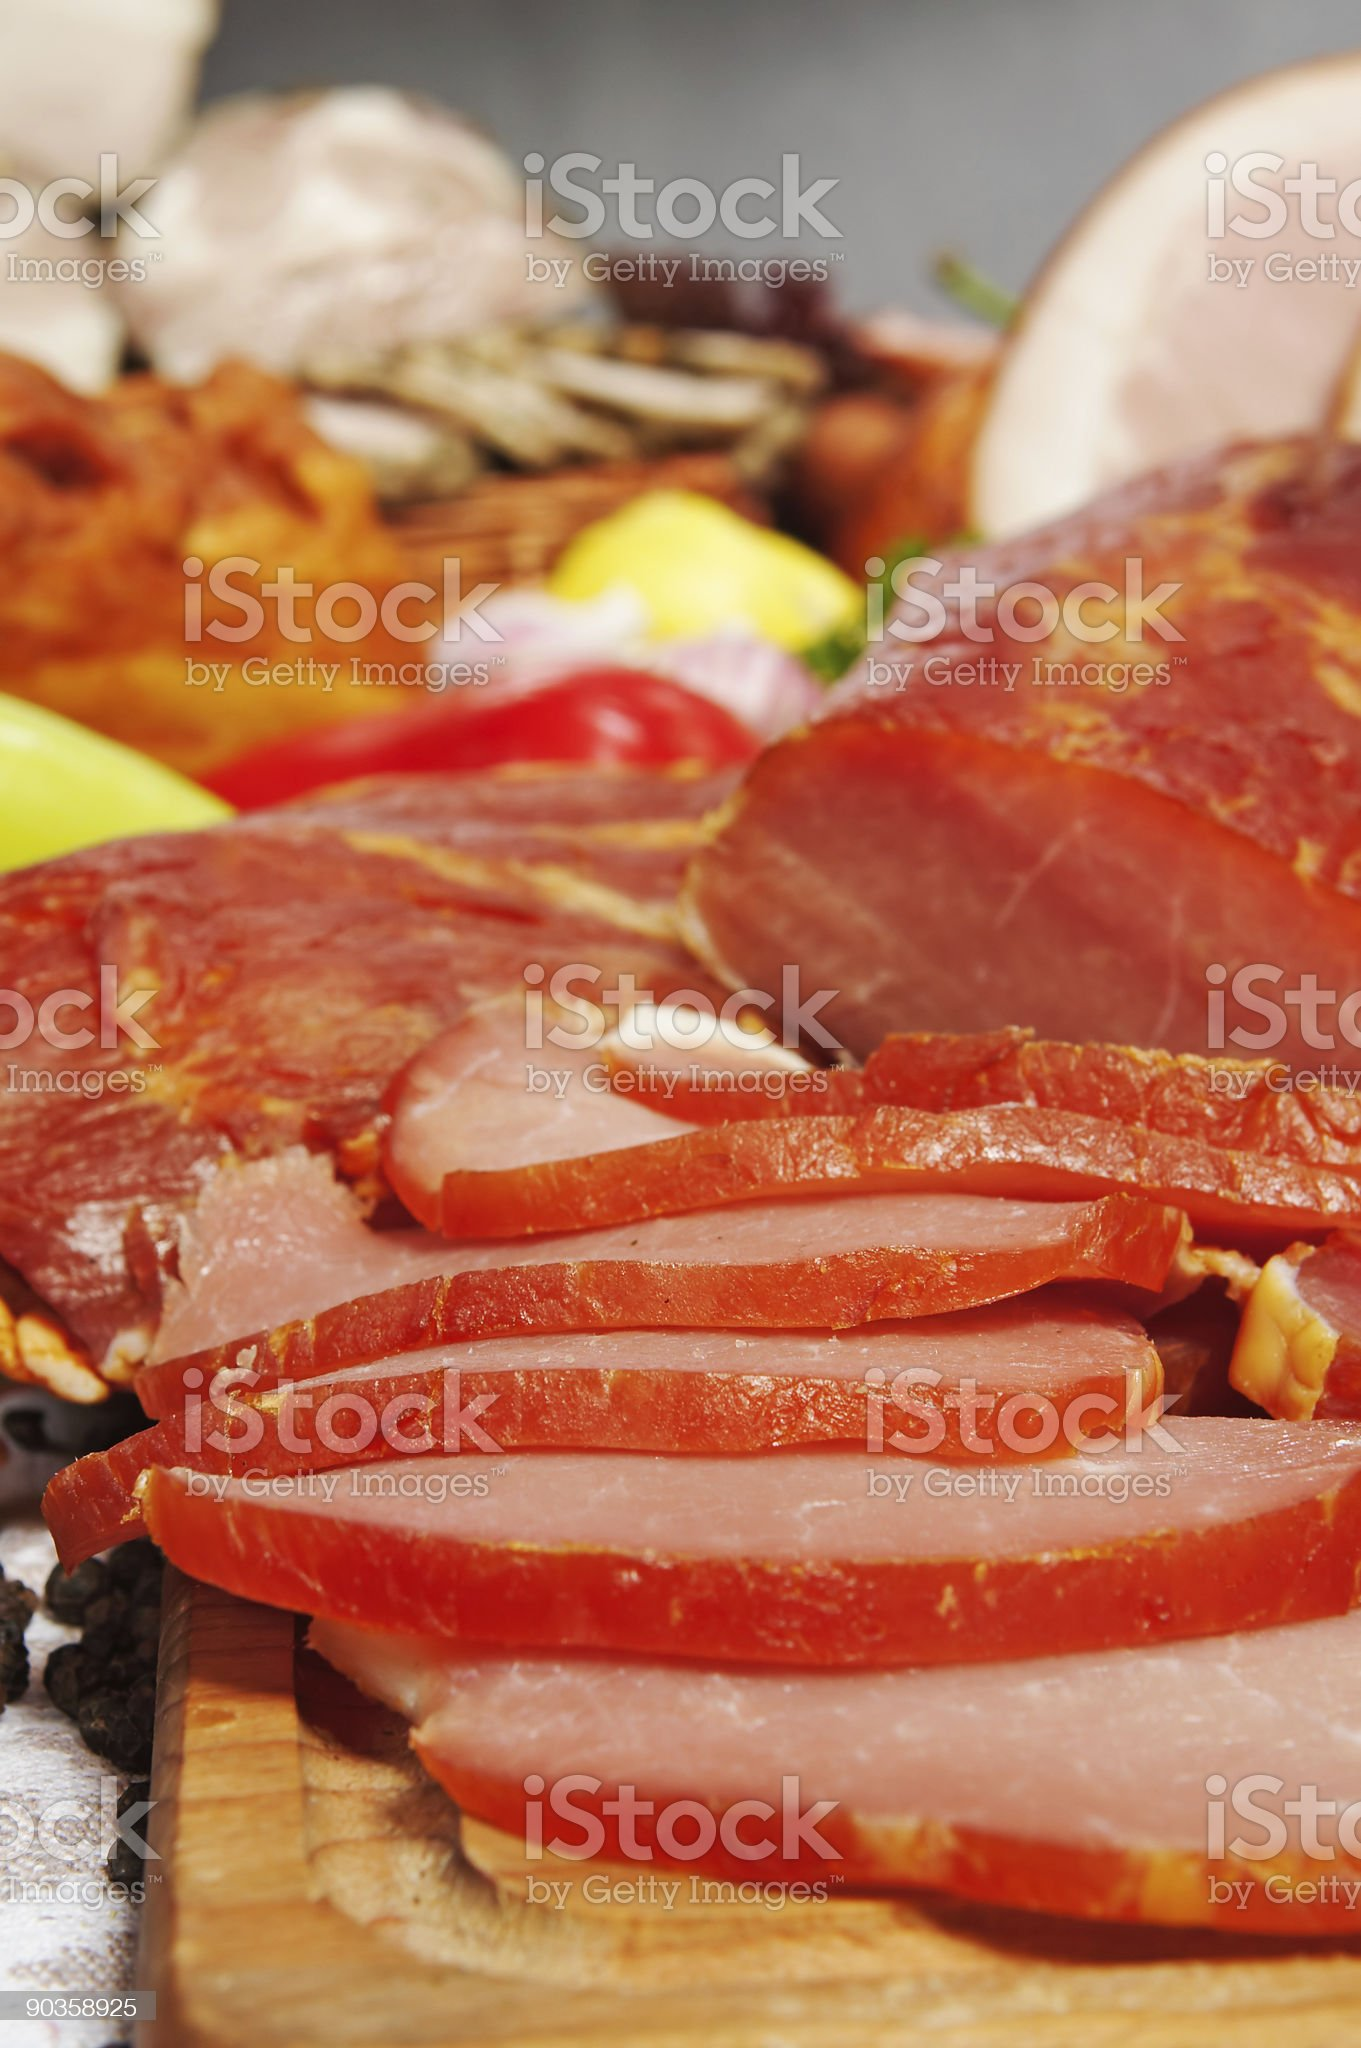 meat cut in piecies royalty-free stock photo